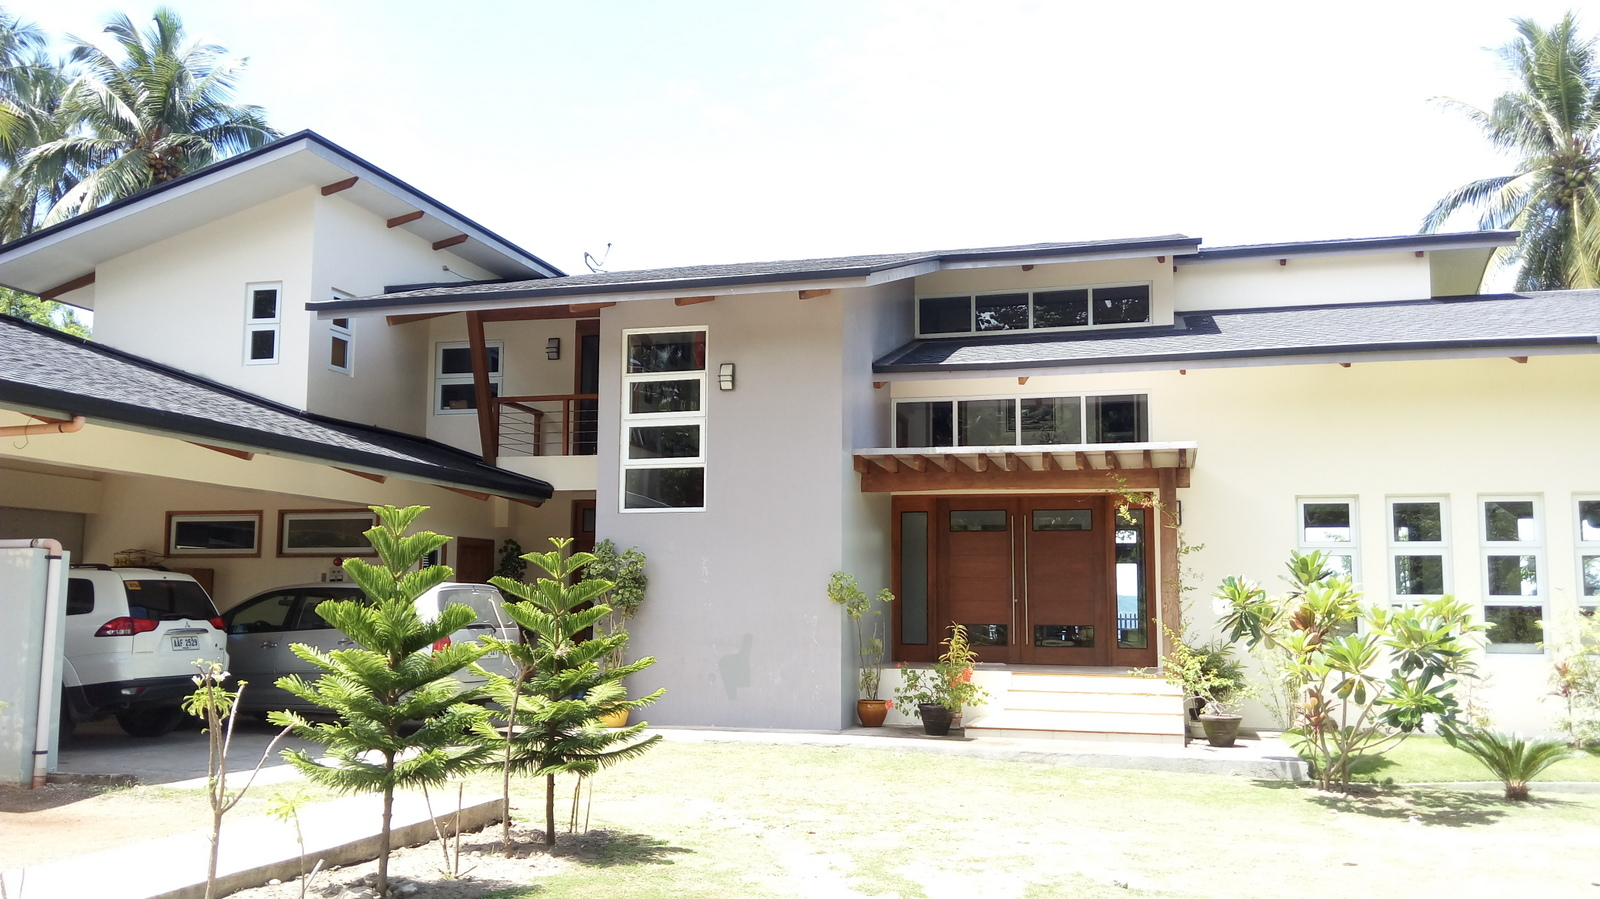 BEACH HOME FOR SALE IN ZAMBOANGUITA